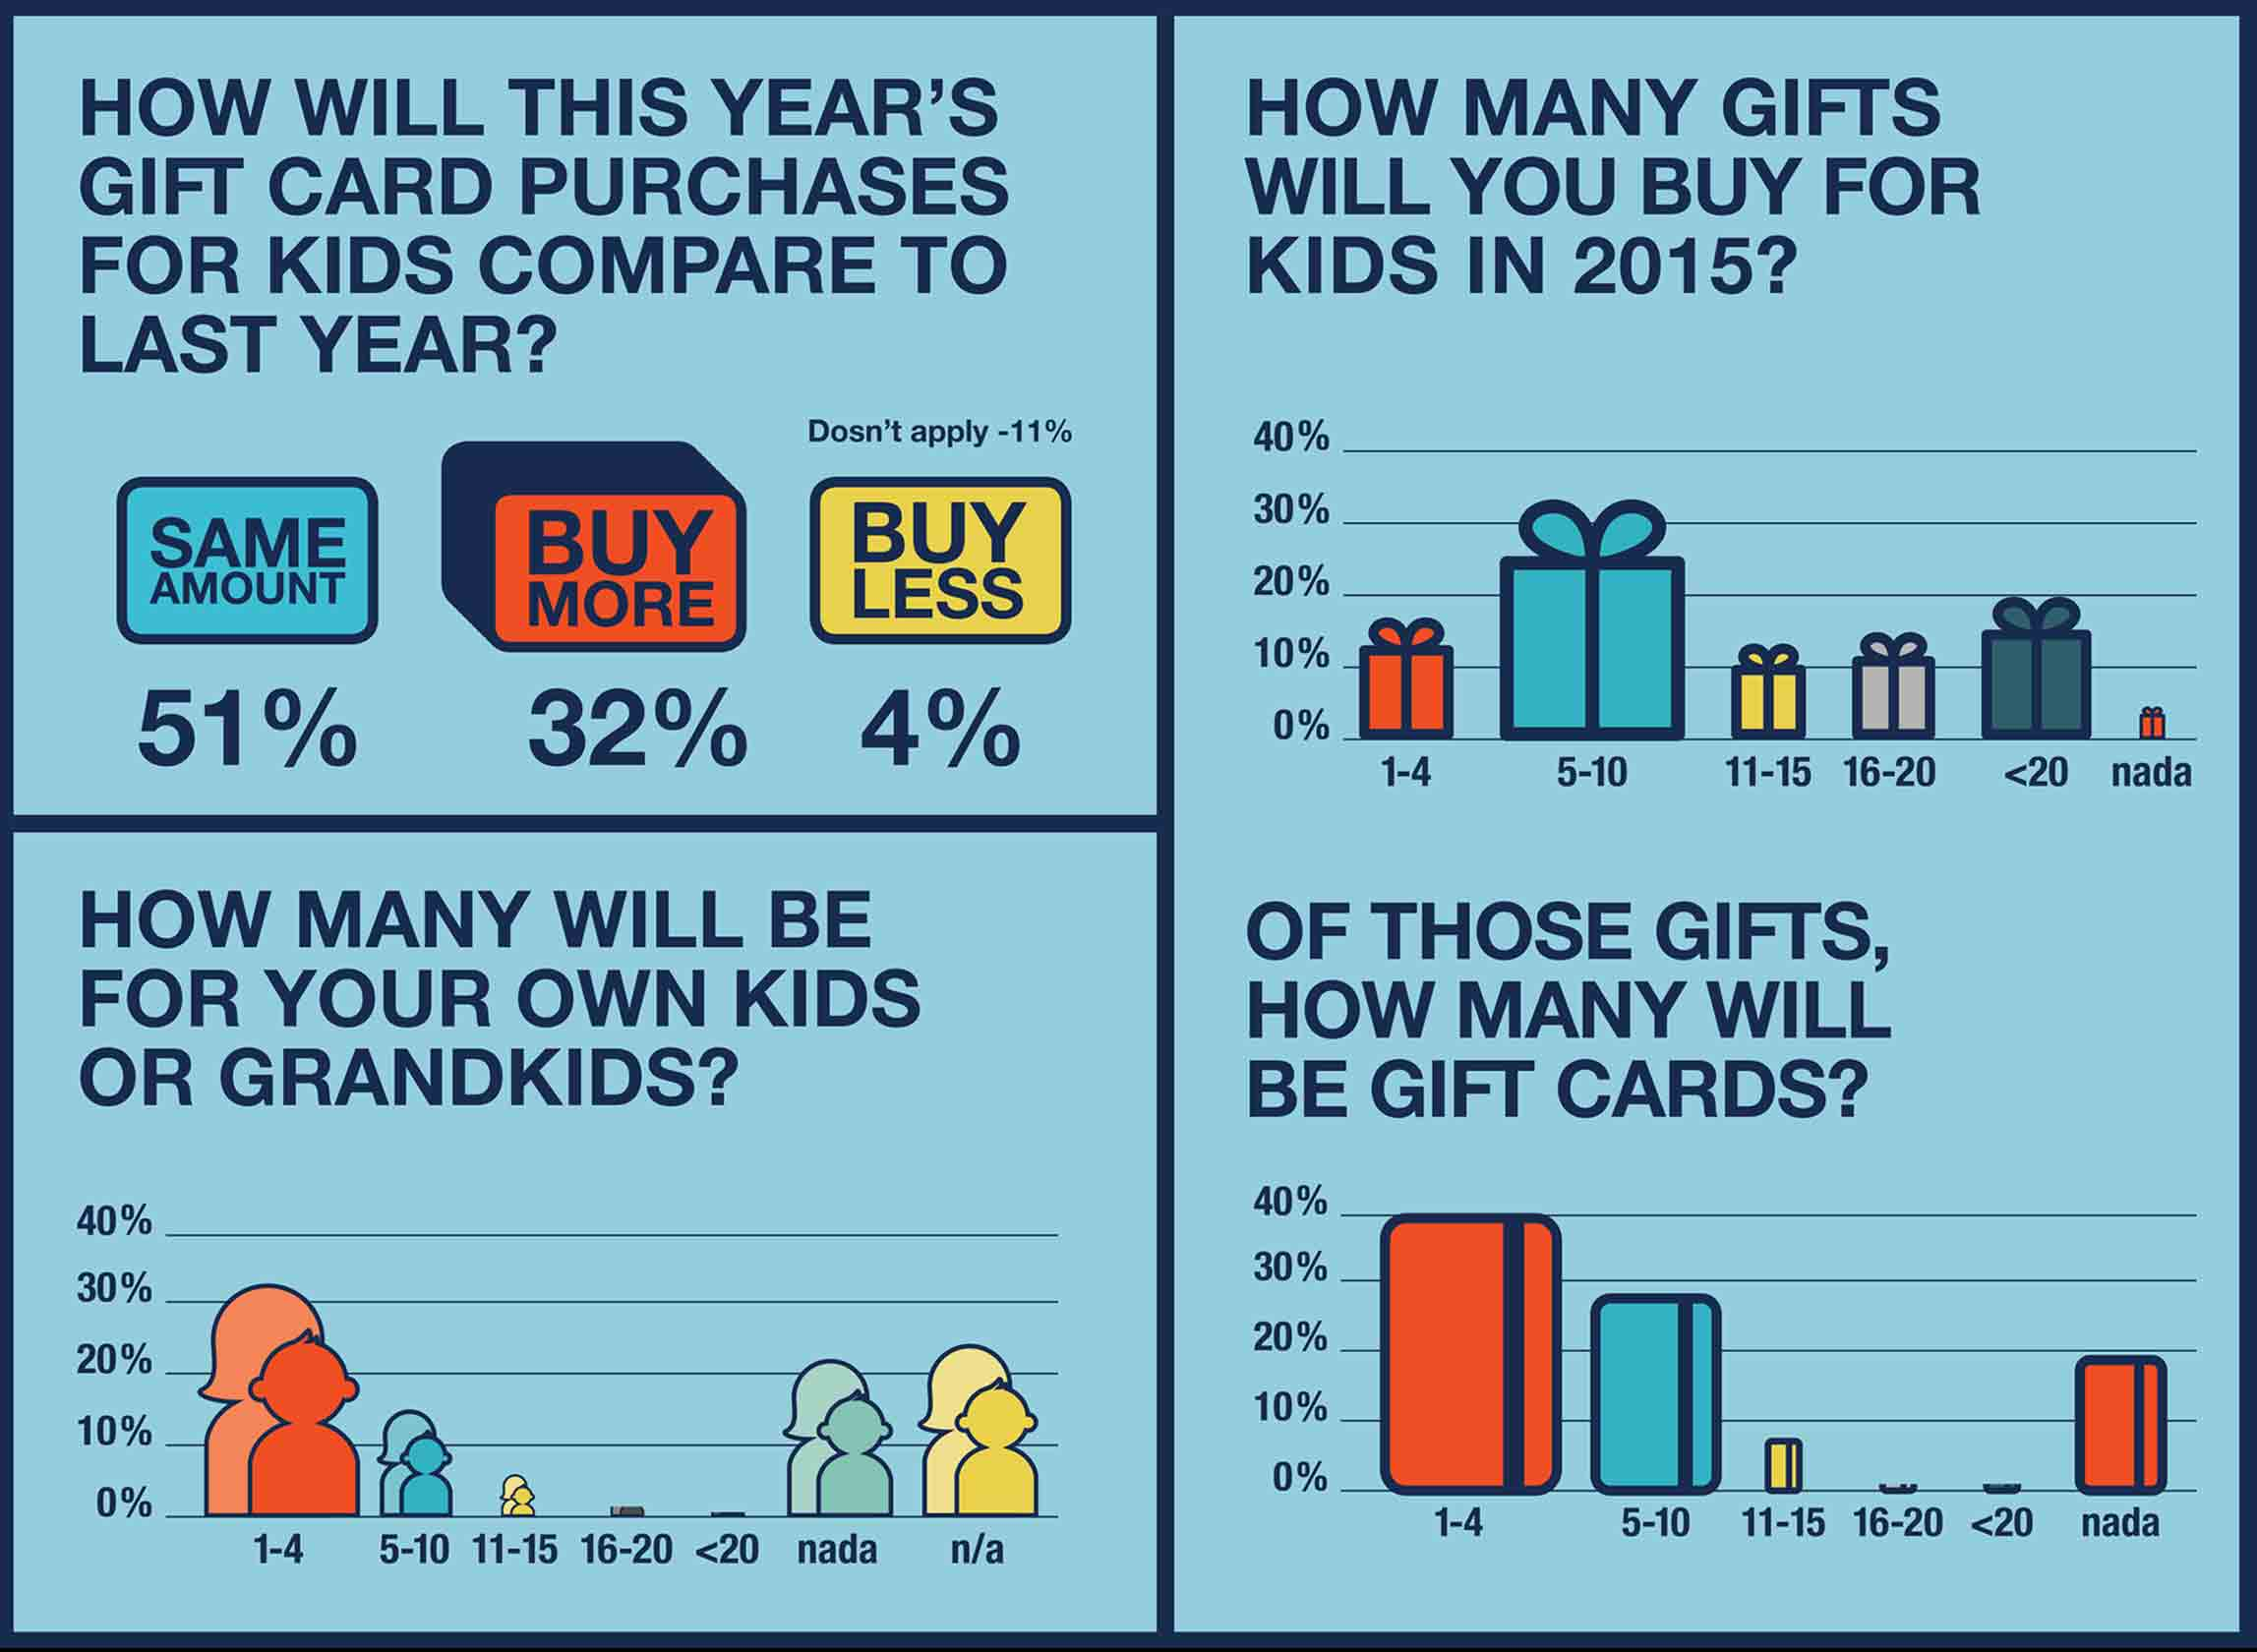 how many gift cards will you buy for kids